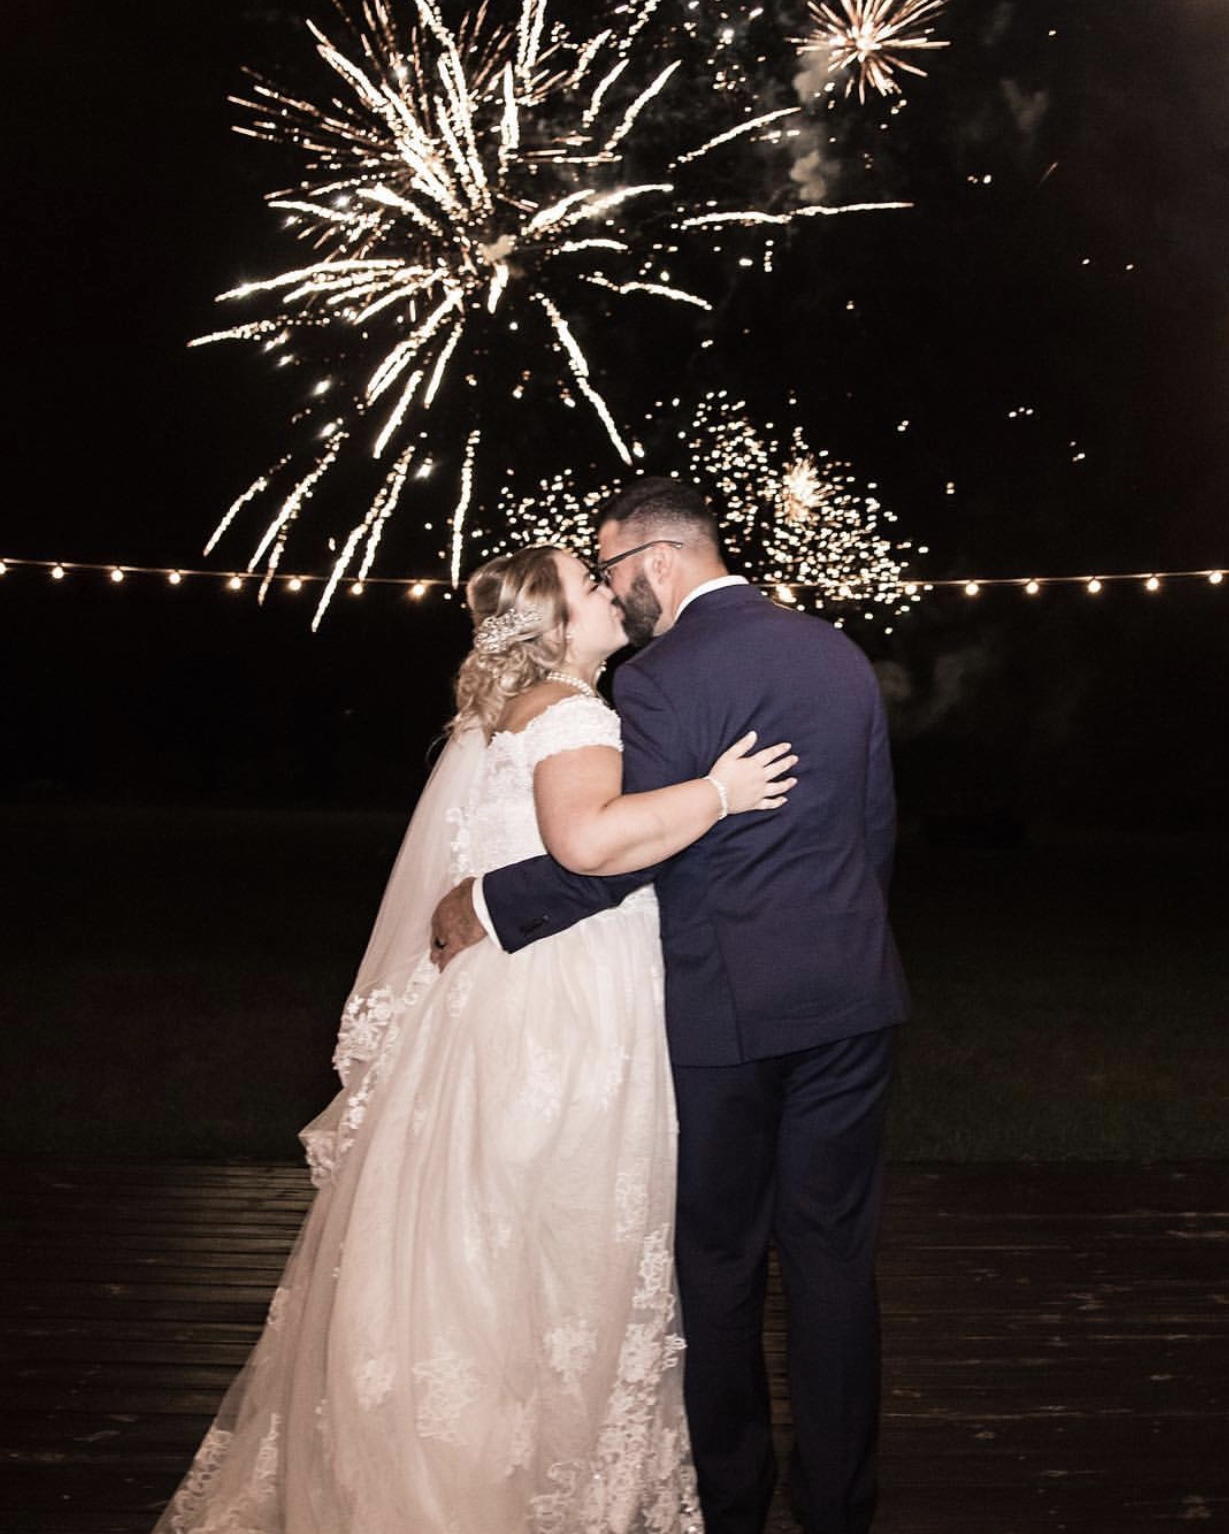 The Enchanting Barn - couple kissing with fireworks in background